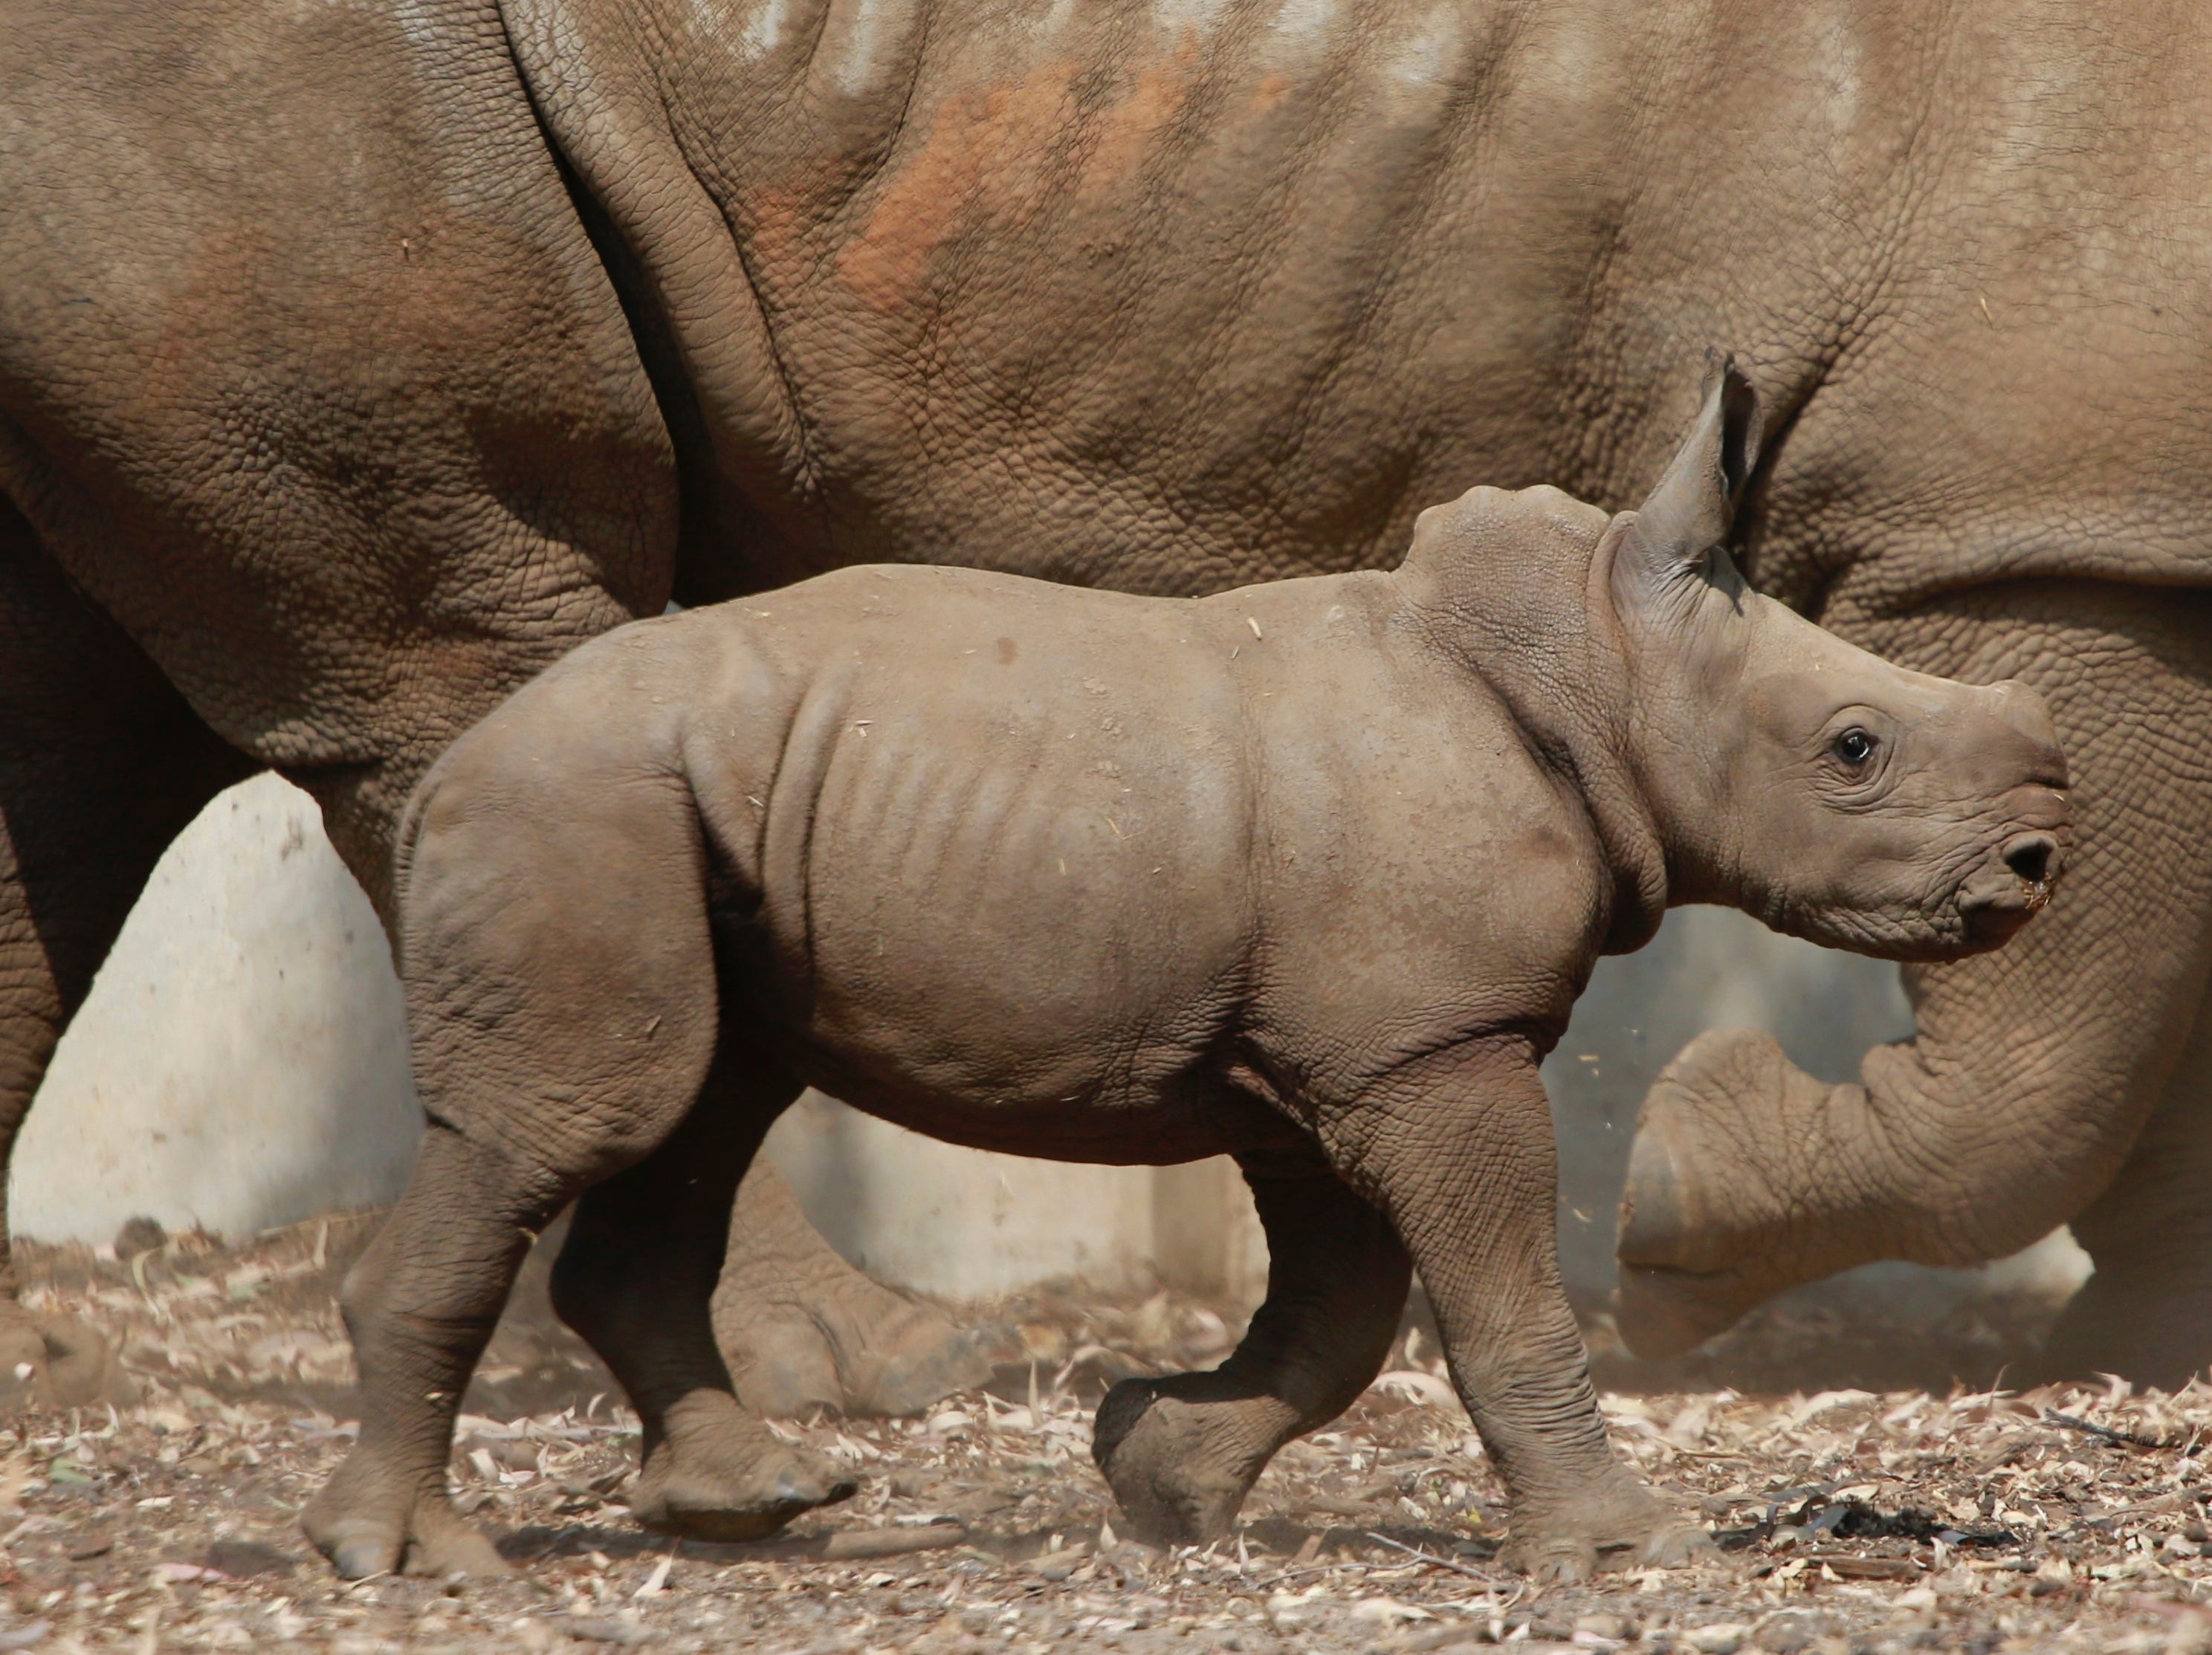 A three week old baby female rhino walks in the Ramat Gan Safari Park near Tel Aviv, Israel, Monday, Sept. 17, 2018. The center's spokeswoman Sagit Horowitz said it is the 30th birth of a rhinoceros in the Safari park.